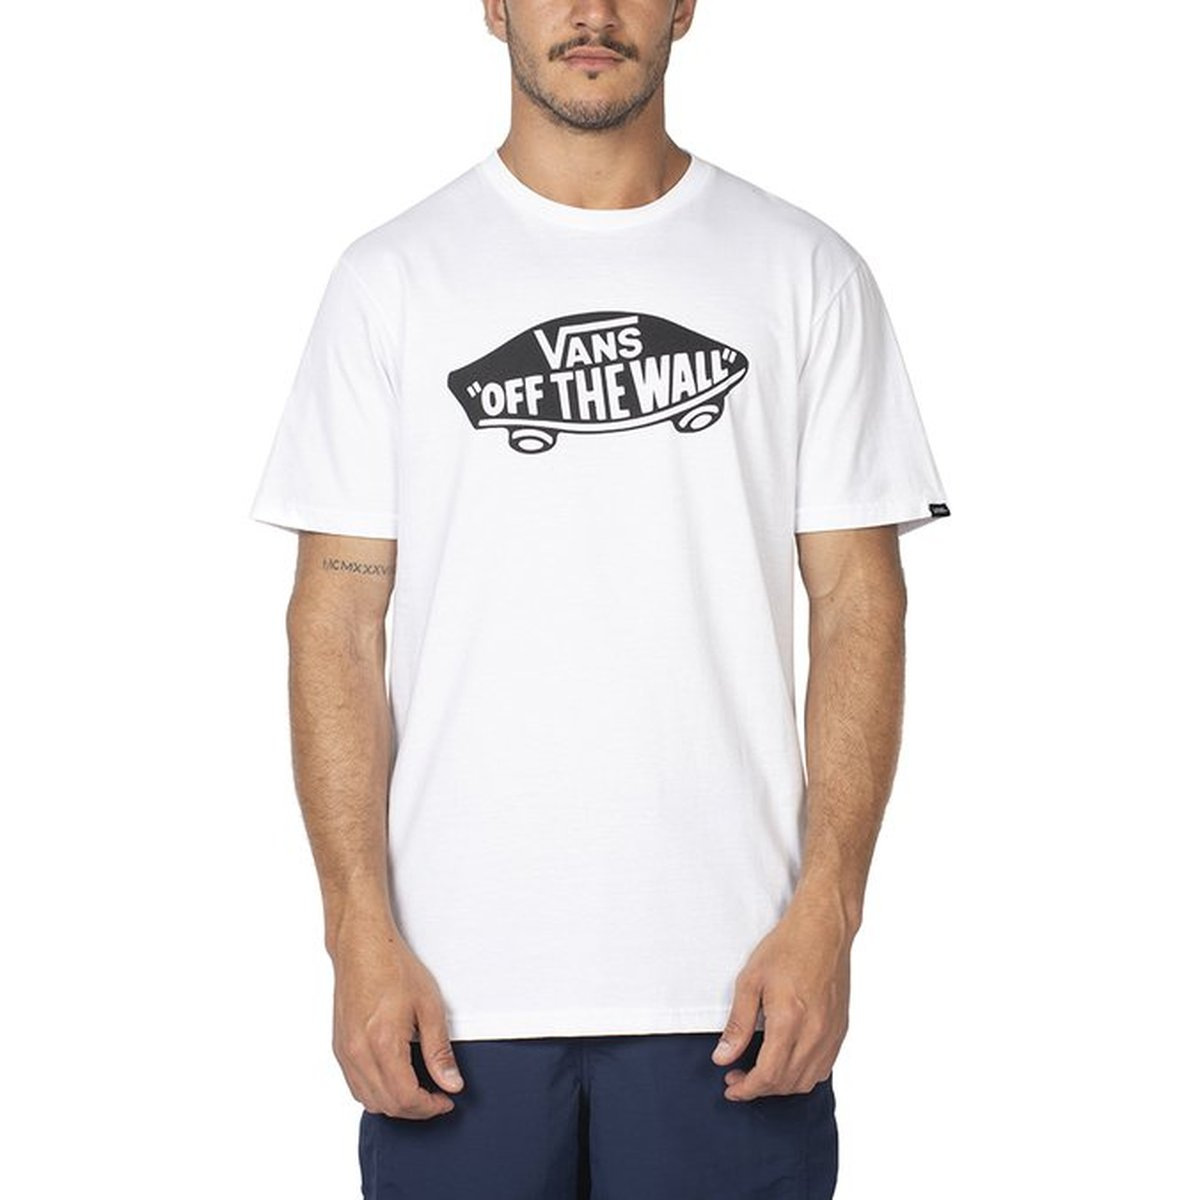 CAMISETA VANS OTW WHITE-BLACK